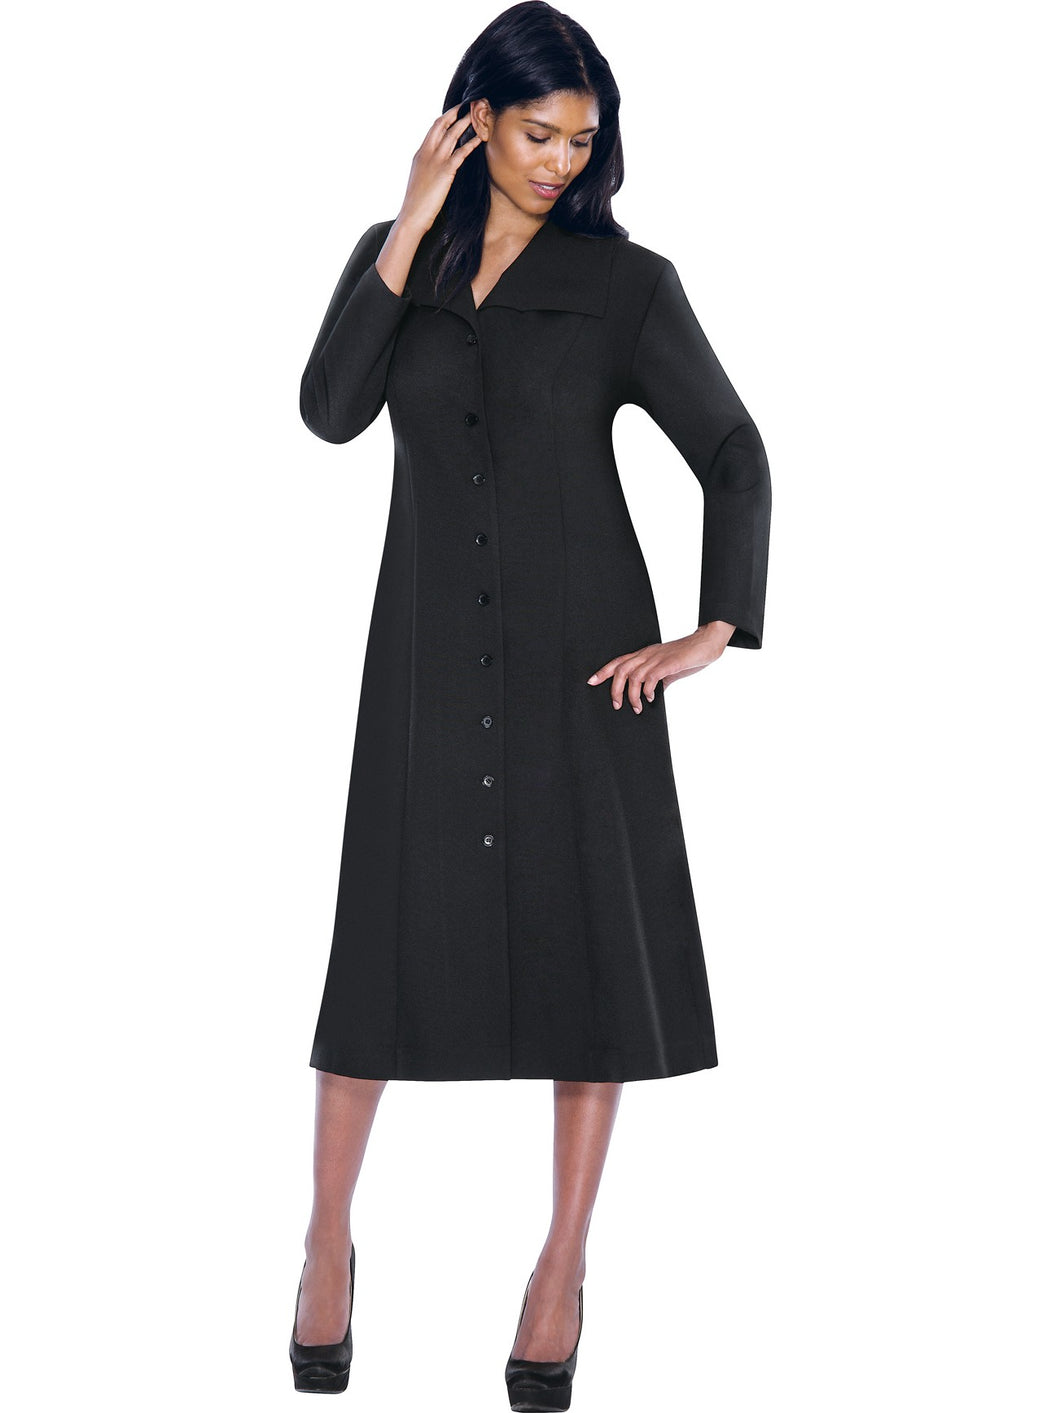 G11573 Black Usher Dress, Church, Choir, Group Uniform